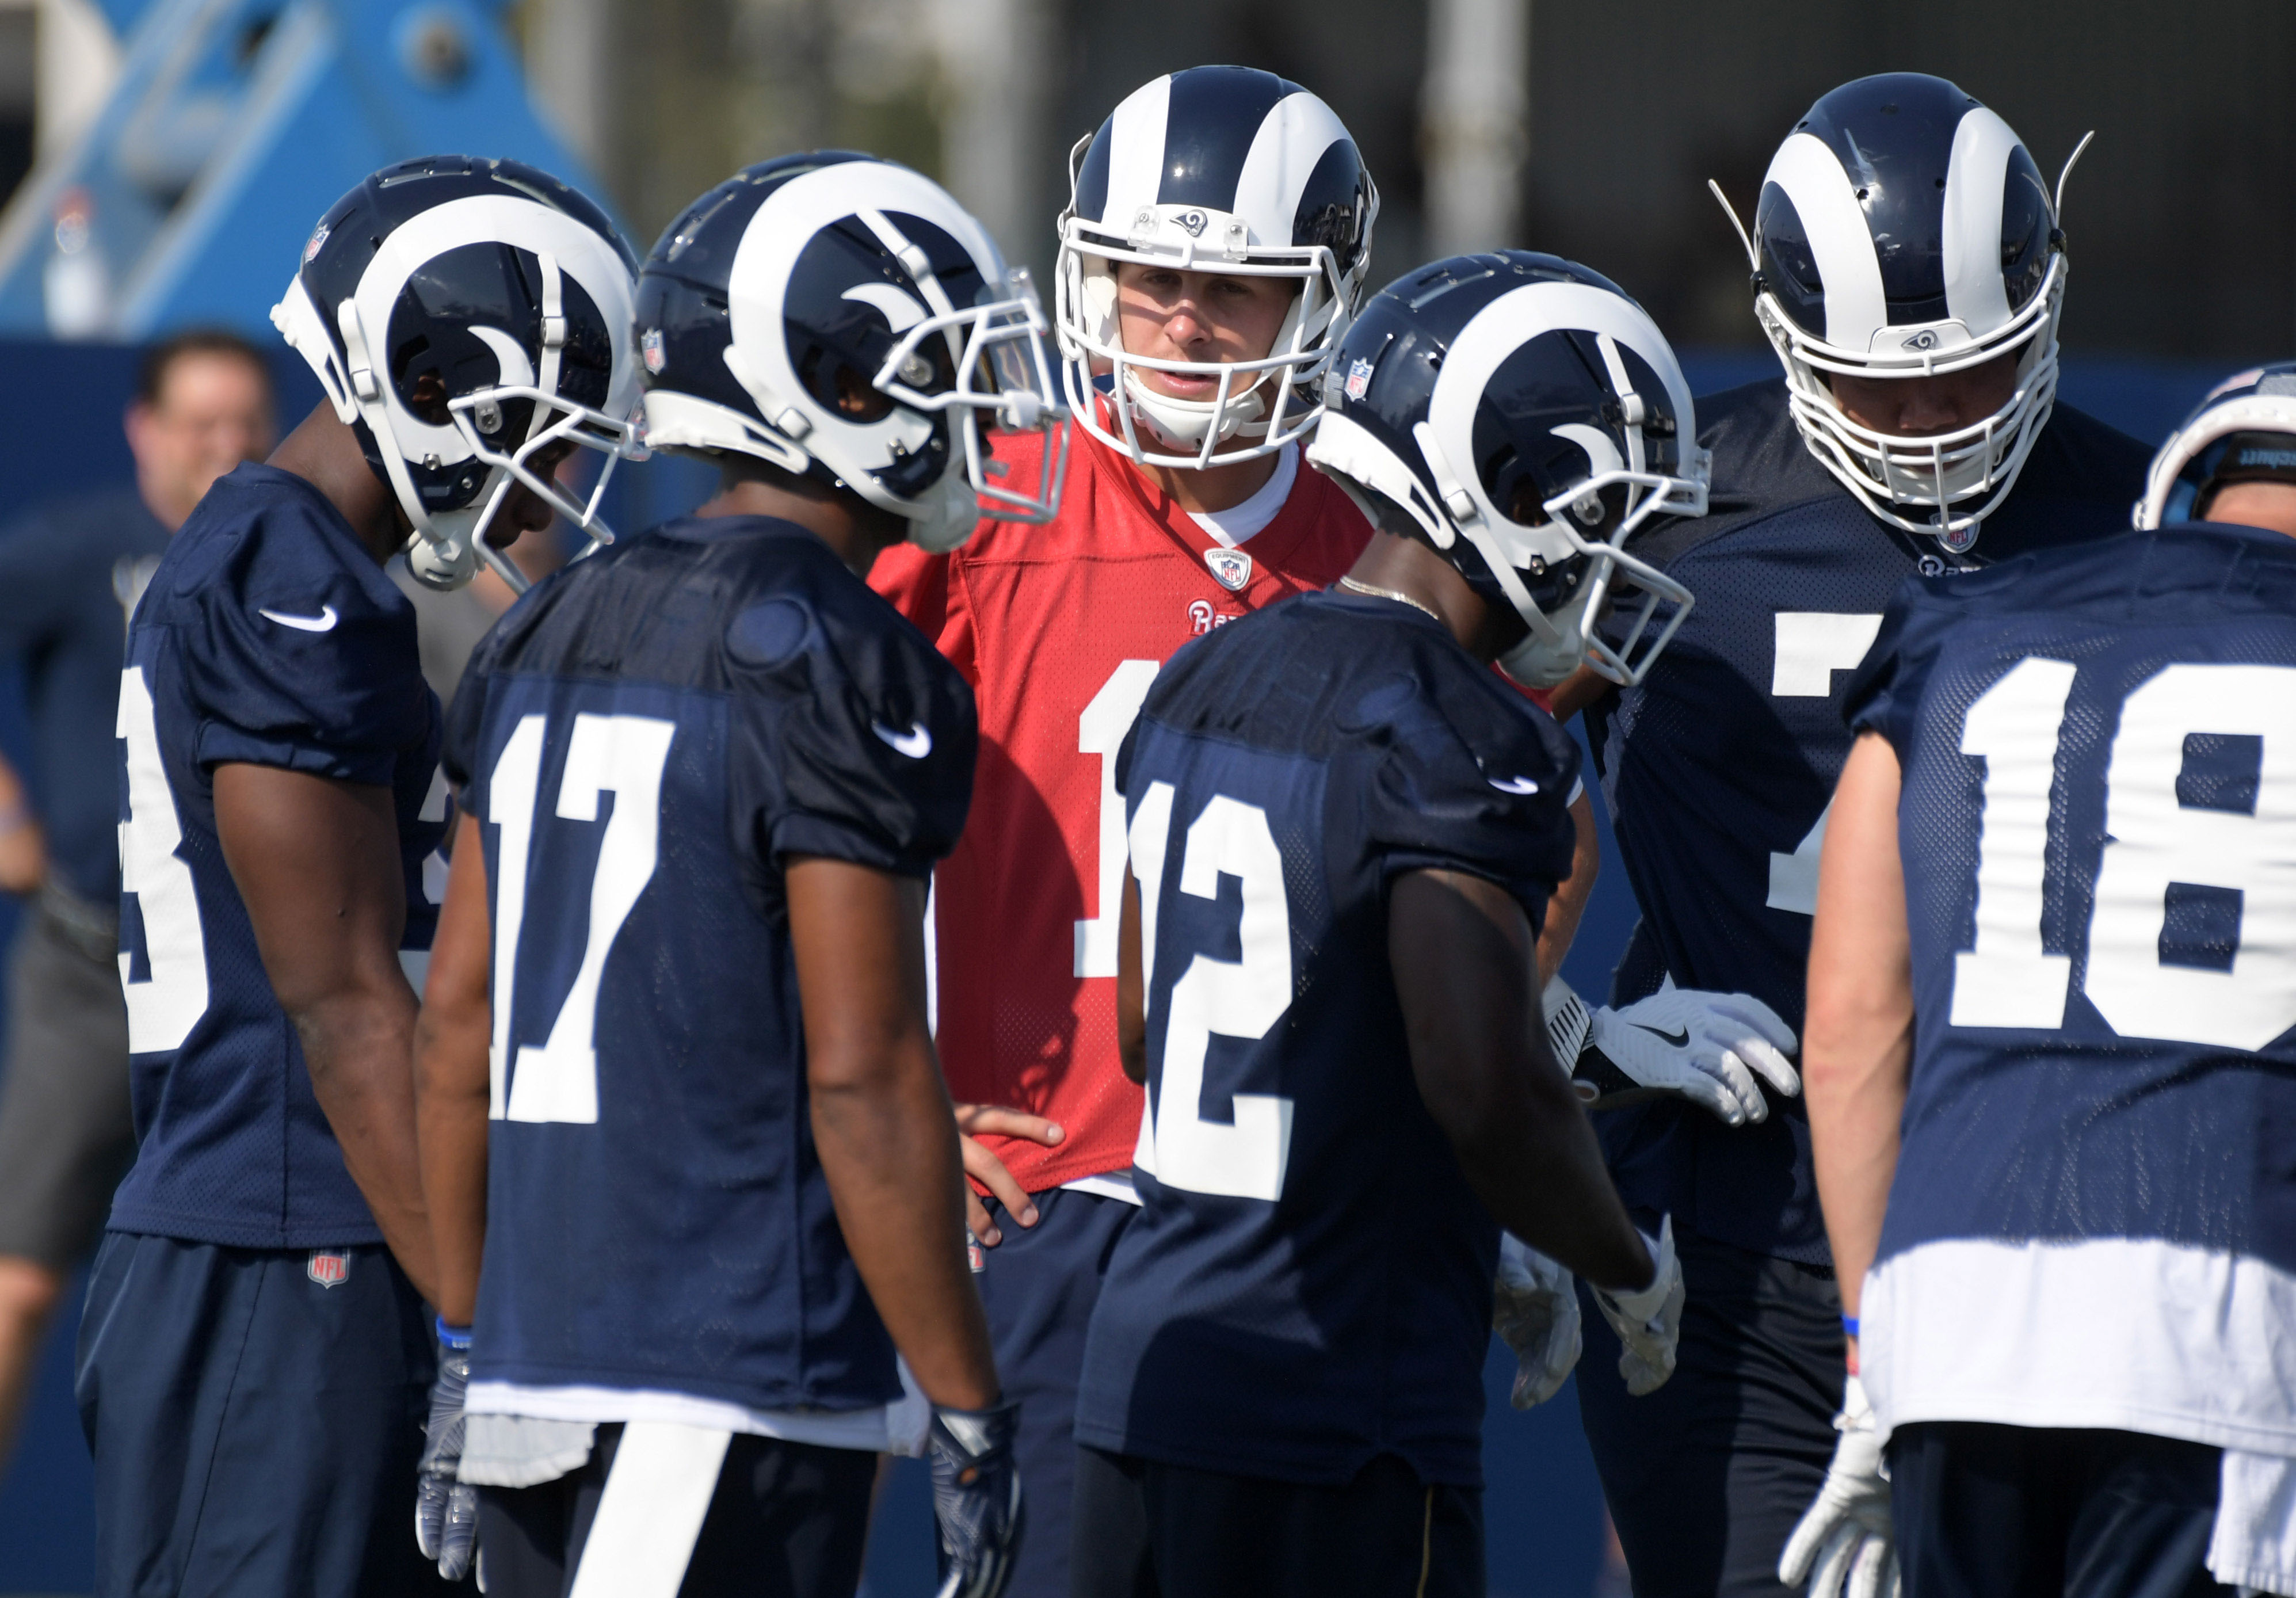 Los Angeles Rams QB Jared Goff huddles with teammates during training camp, Jul. 28, 2018.